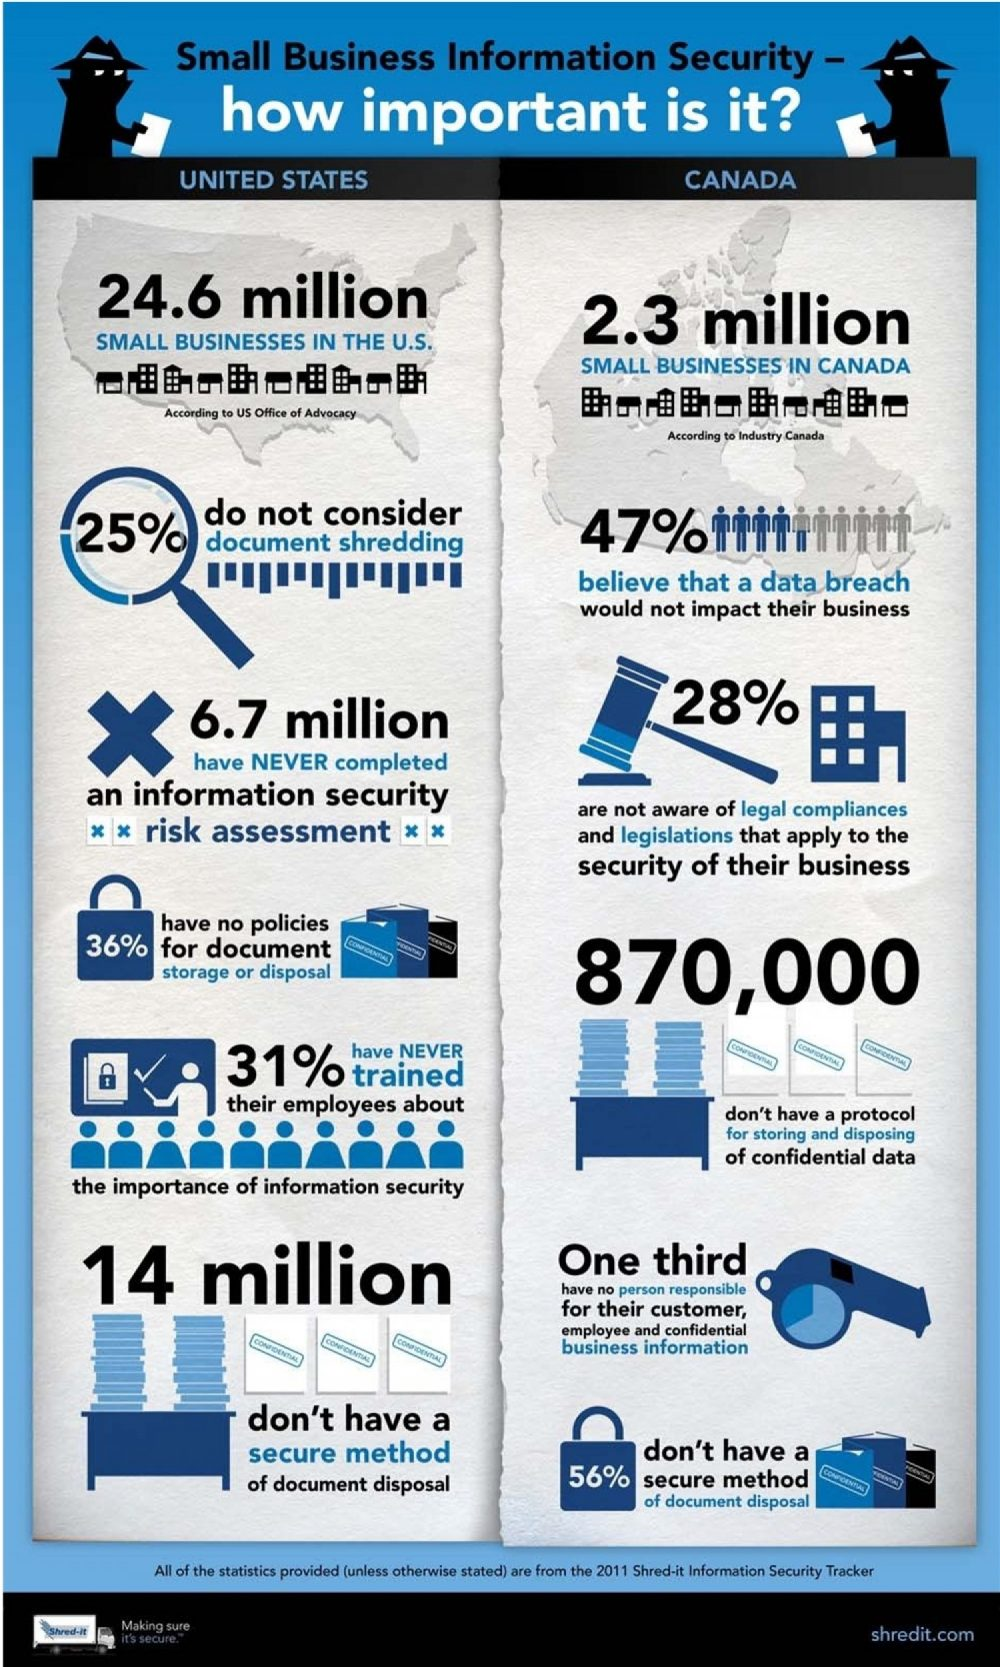 Information security for small businesses